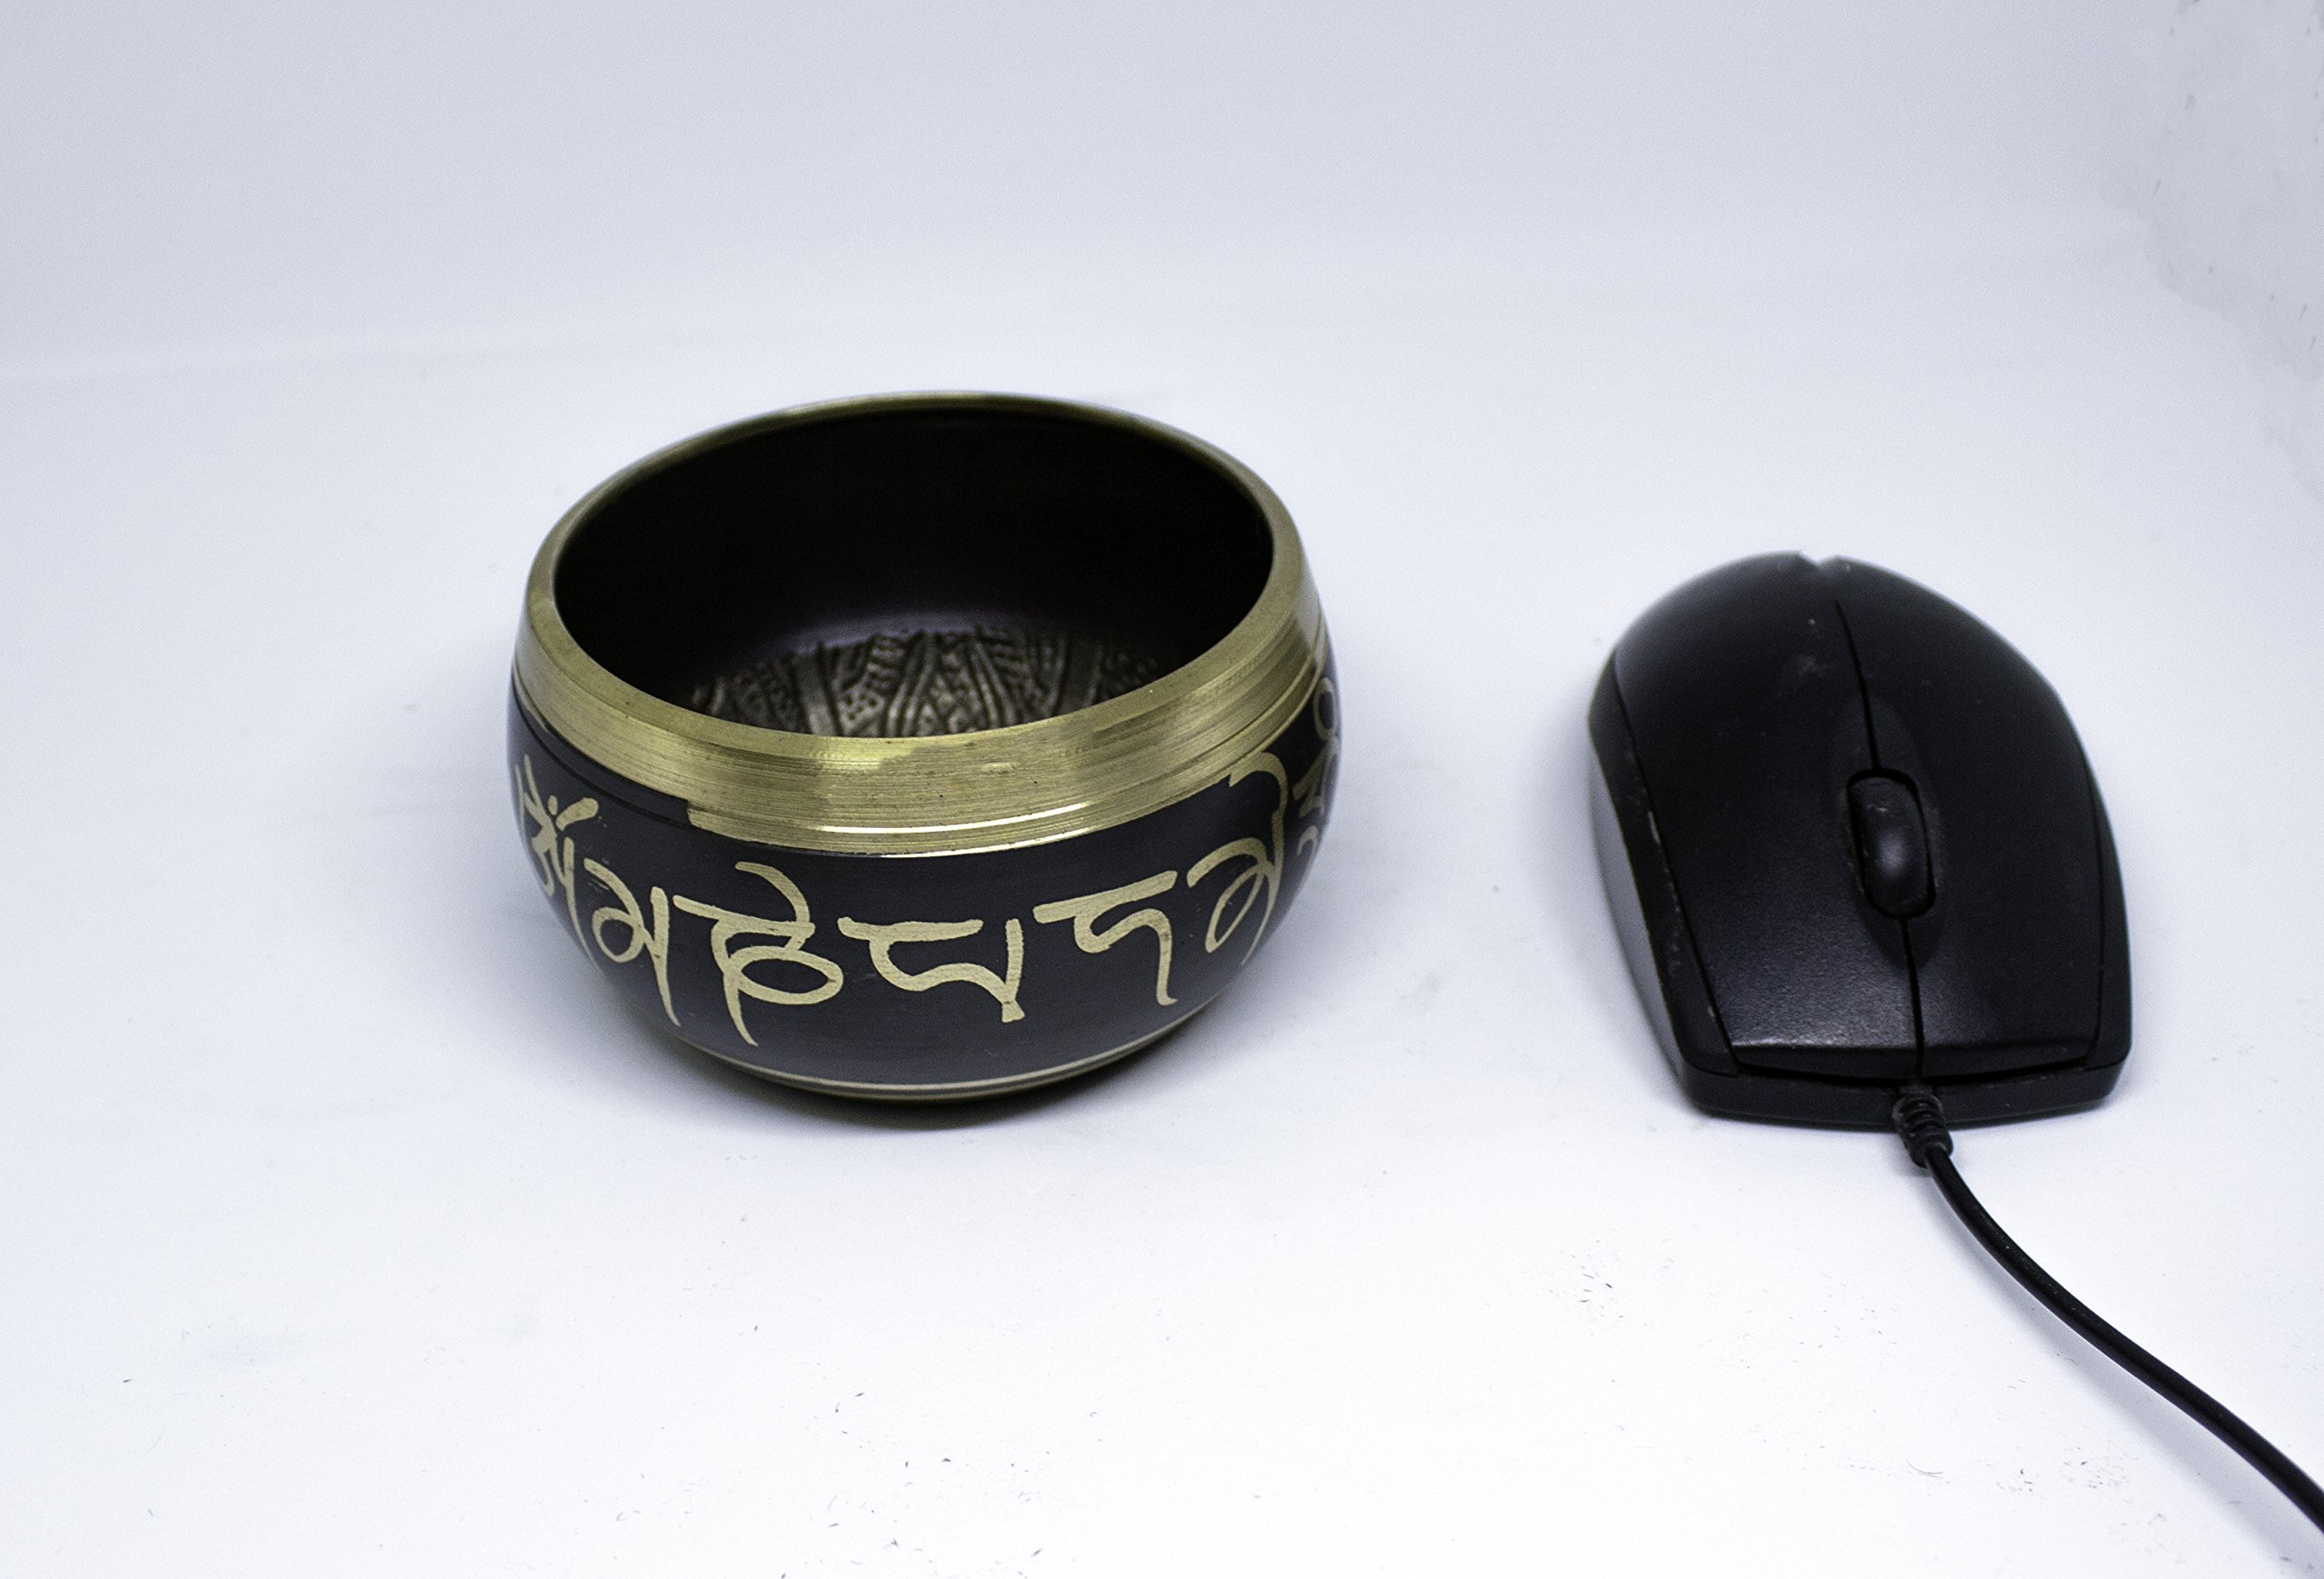 HandMadeCart Antique Design Tibetan Singing Bowls with Peaceful silent Ohm sound-Instrument for Meditation,Relaxation,Chakra Healing,Yoga.Perfect Spiritual Healing Gift. Made with Bronze.